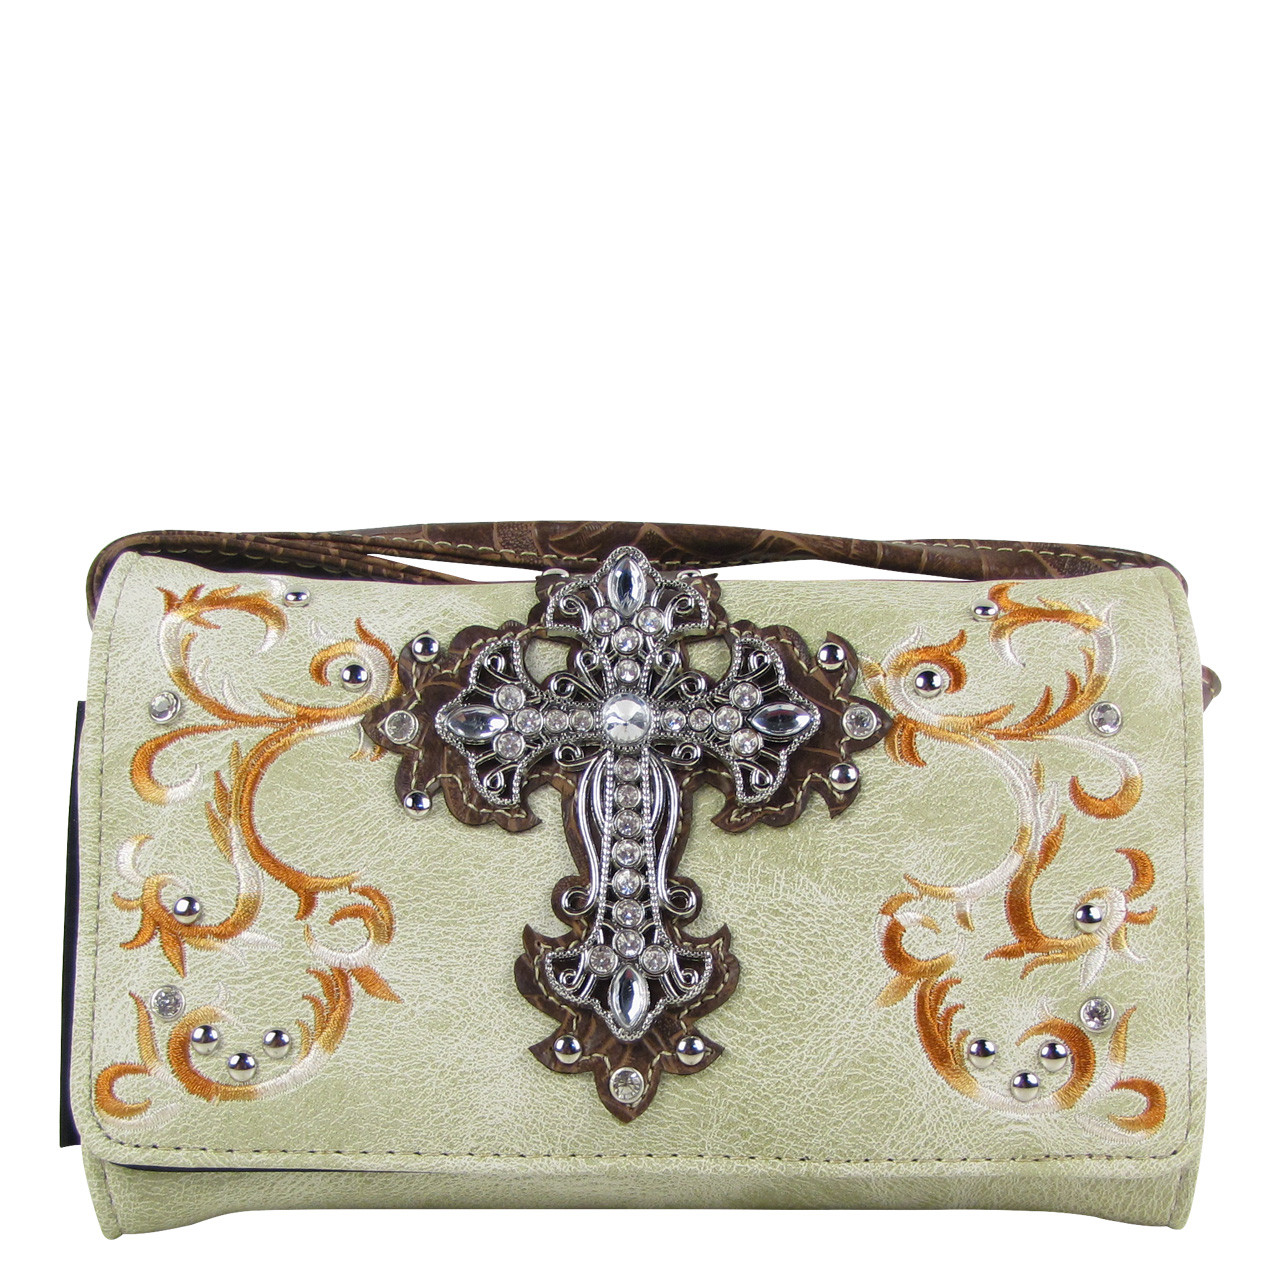 BEIGE RHINESTONE CROSS LOOK CLUTCH TRIFOLD WALLET CW1-0472BEI